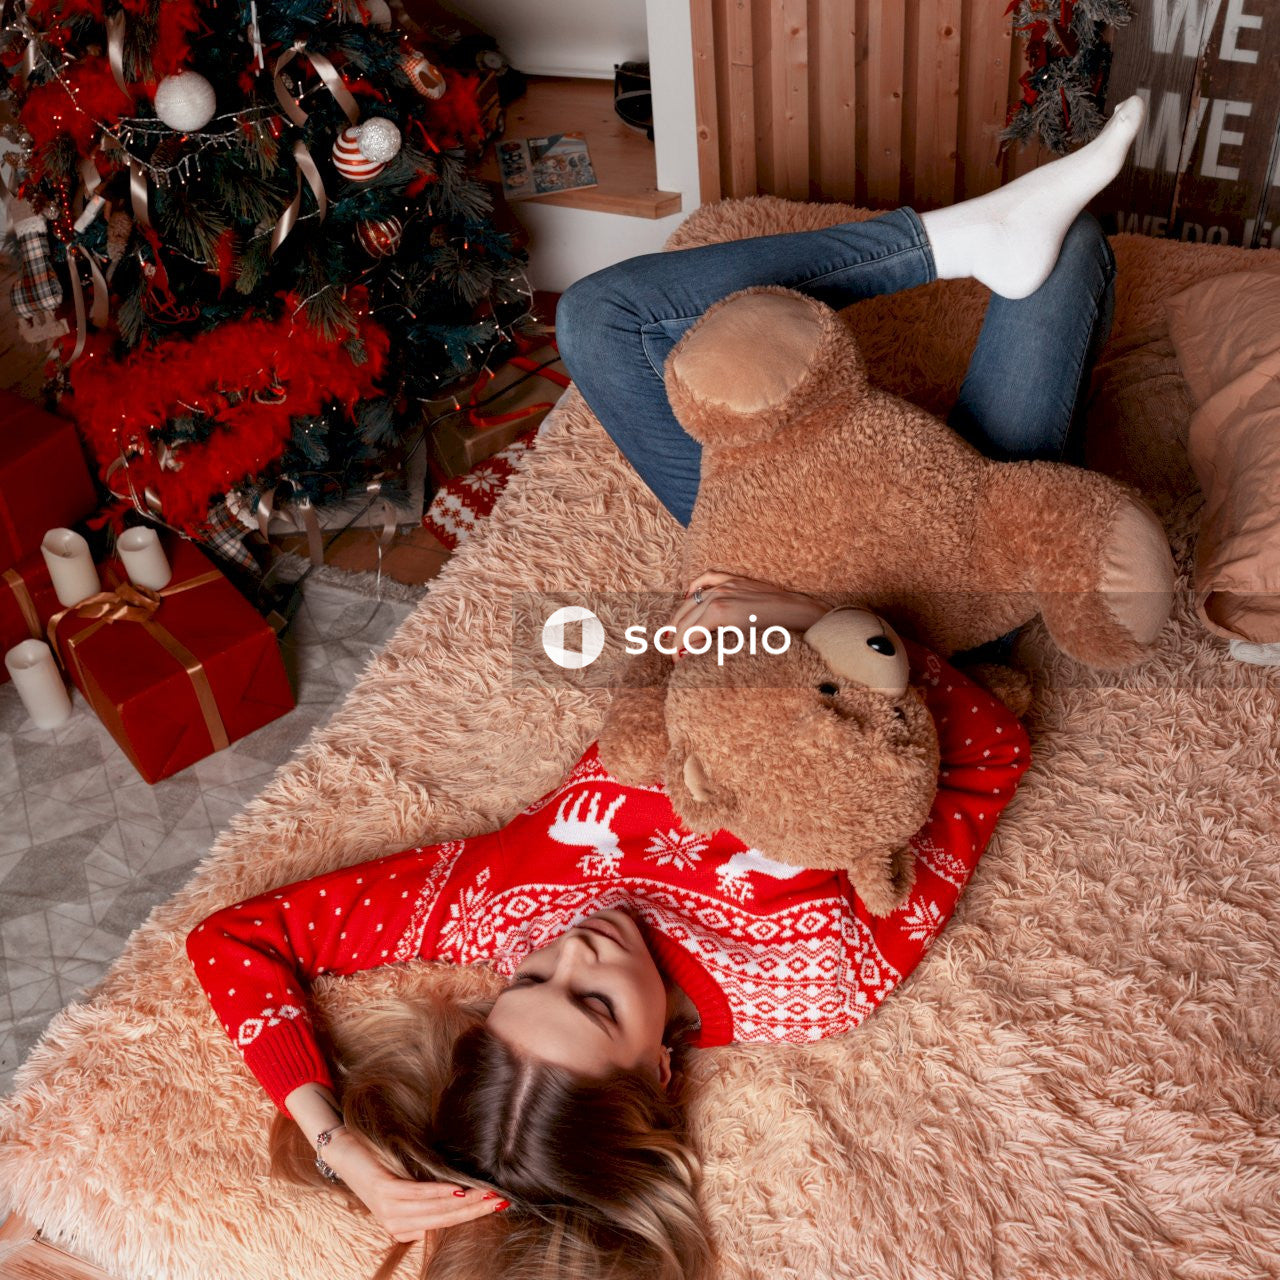 Woman lying on bed with bear plush toy